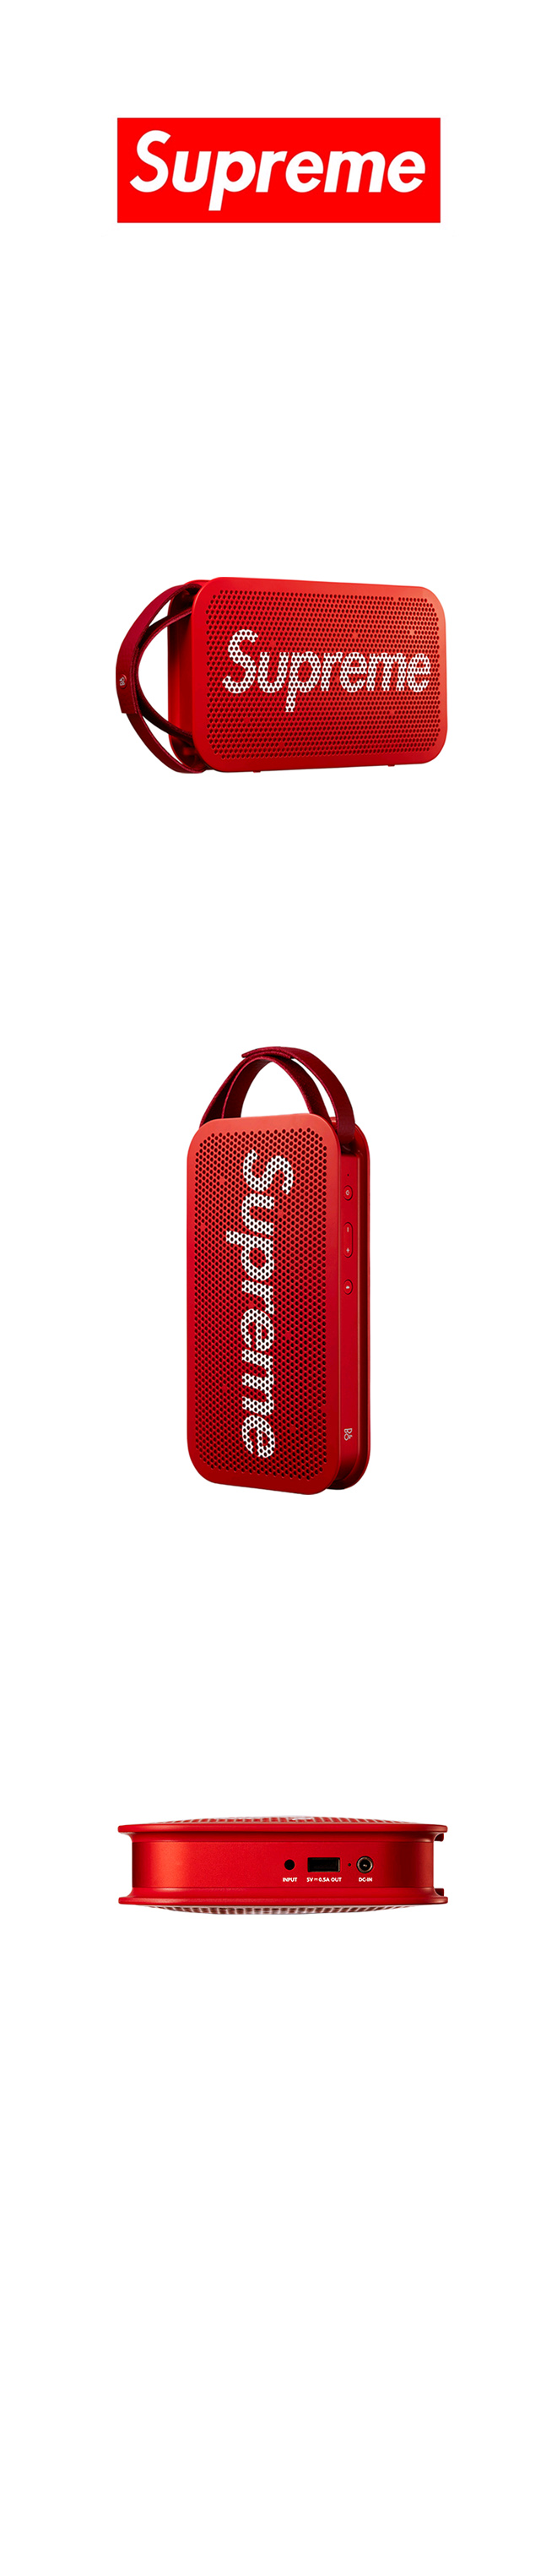 슈프림(SUPREME) SUPREME Supreme®/B&O PLAY by Bang & Olufsen® A2 Portable Speaker (Red)